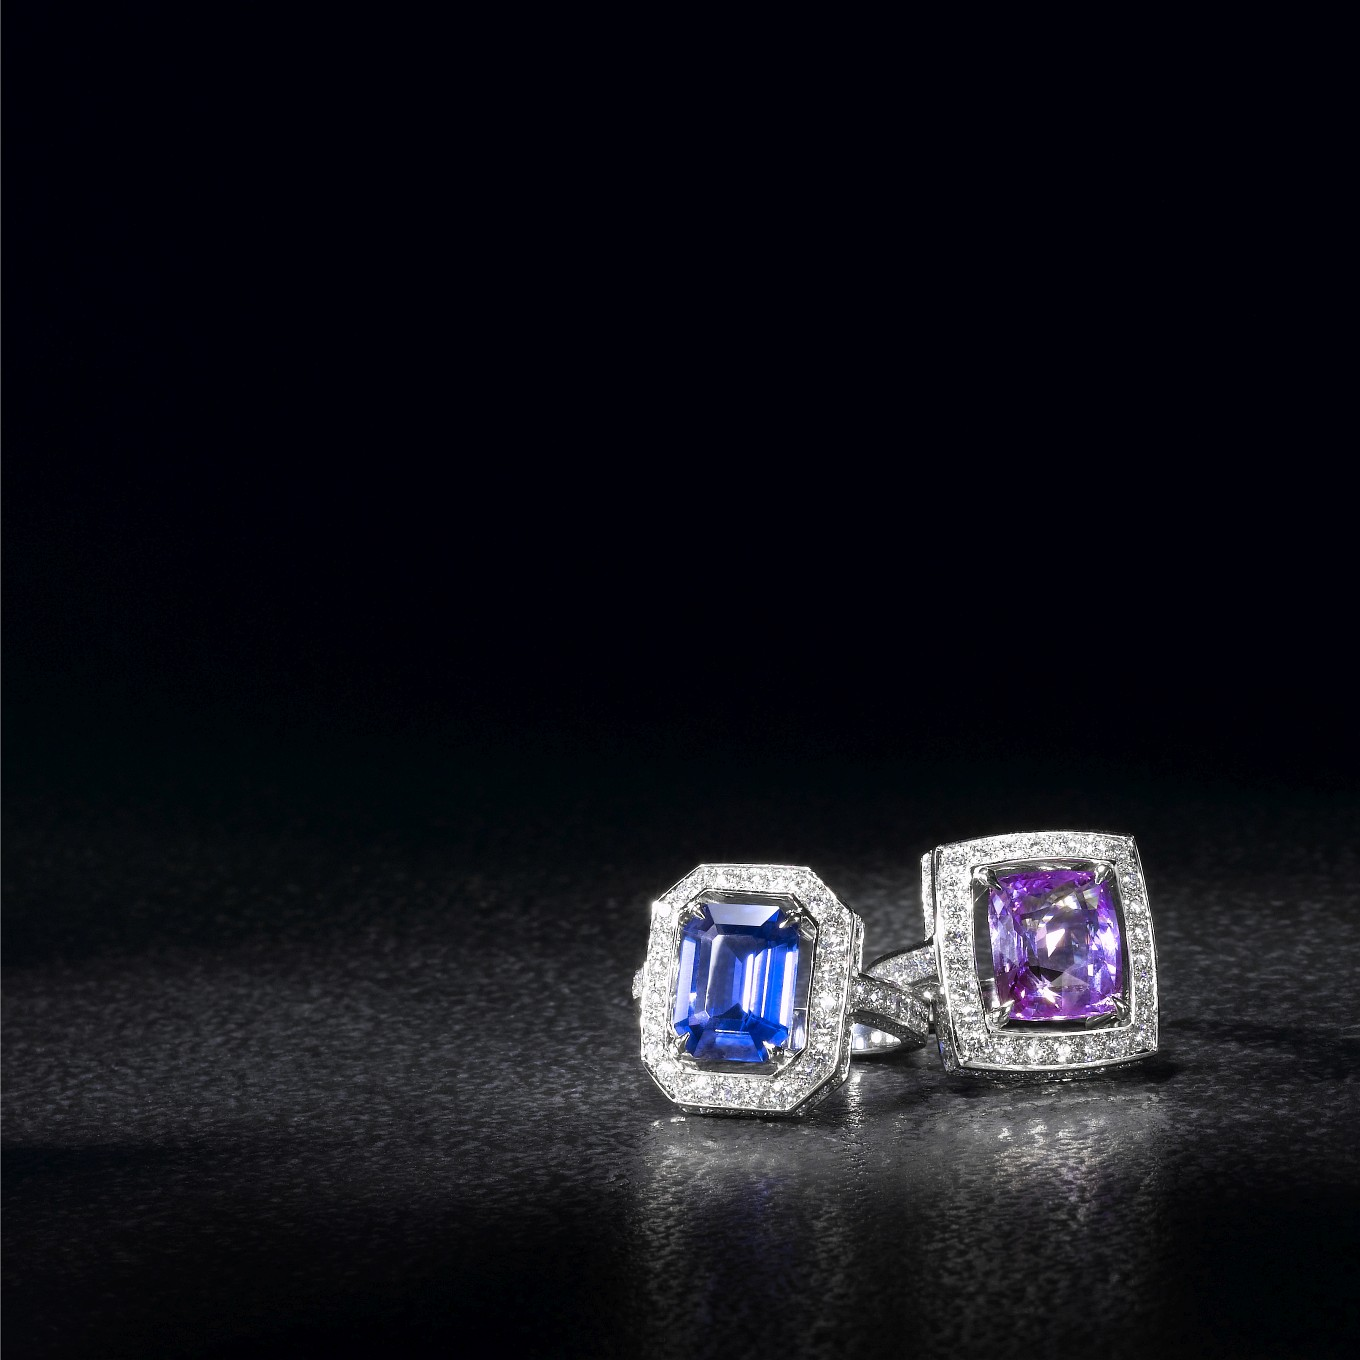 BLUE SAPPHIRE FRAME RING WITH DIAMONDS. PURPLE SAPPHIRE FRAME RING WITH DIAMONDS